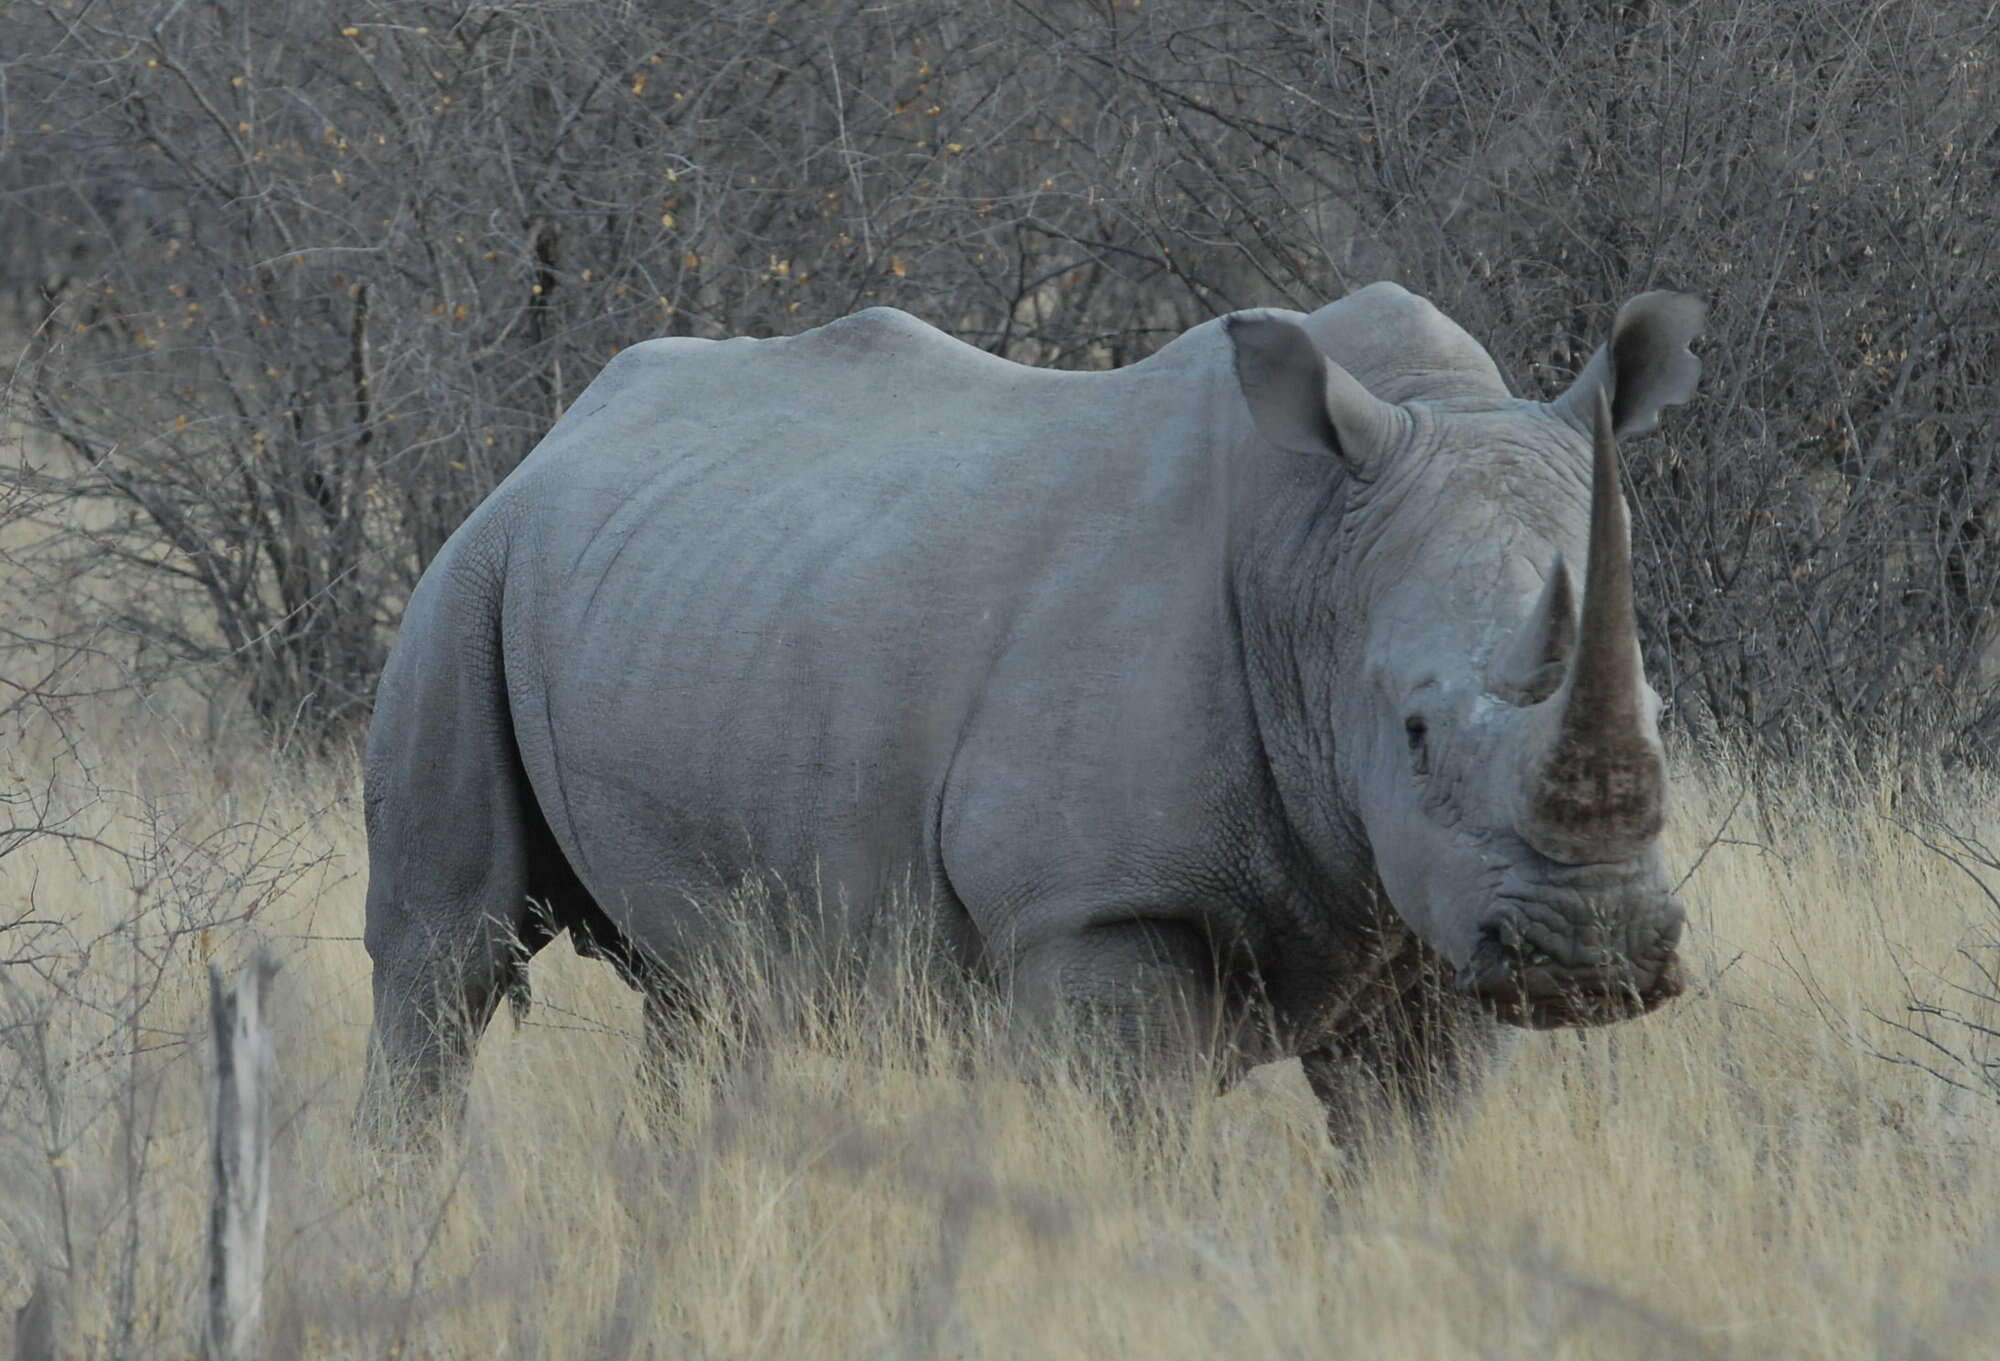 Self-drive holiday through Namibia, including tracking desert-adapted rhino on the Palmwag Reserve, walking in the Mundulea Reserve and wildlife viewing in Etosha National Park.